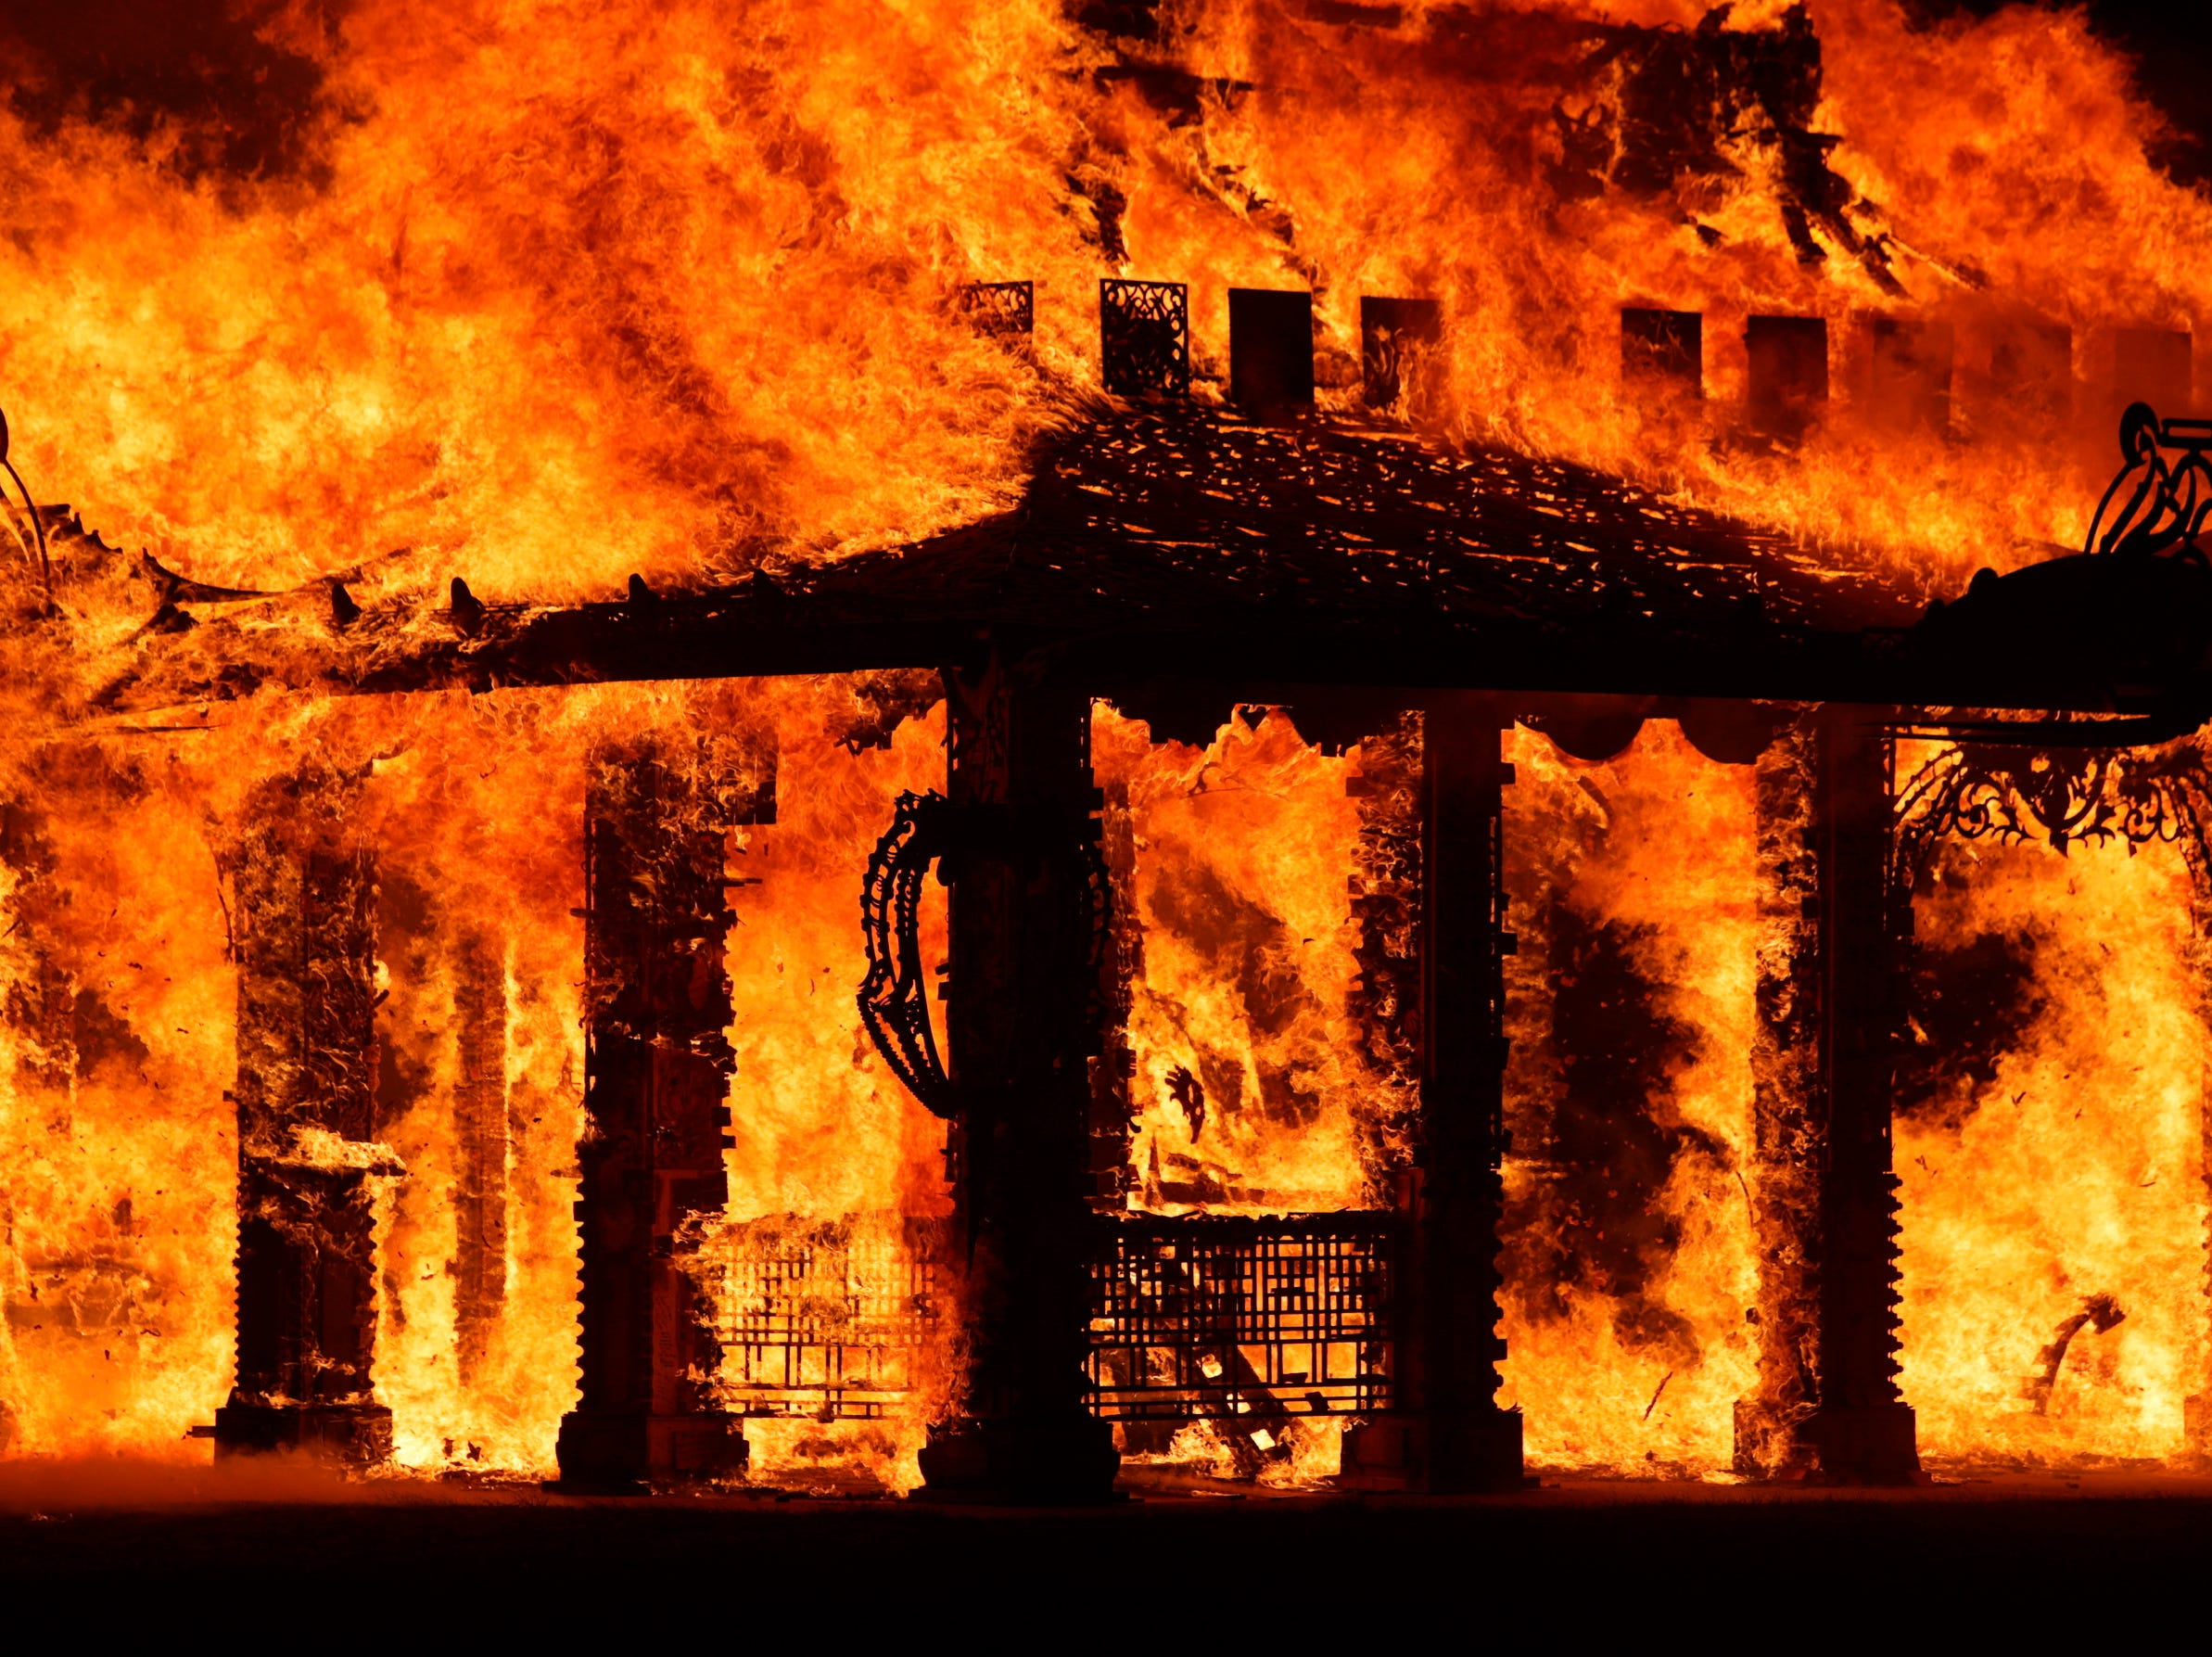 """The """"Temple of Time"""" built as a memorial to the 17 victims of a shooting at Marjory Stoneman Douglas High School is seen on fire during a ceremonial burning in Coral Springs, Fla., Sunday, May 19, 2019. The """"Temple of Time"""" public art installation was set on fire Sunday at the ceremony hosted by the cities of Parkland and Coral Springs, where the high school's students live."""